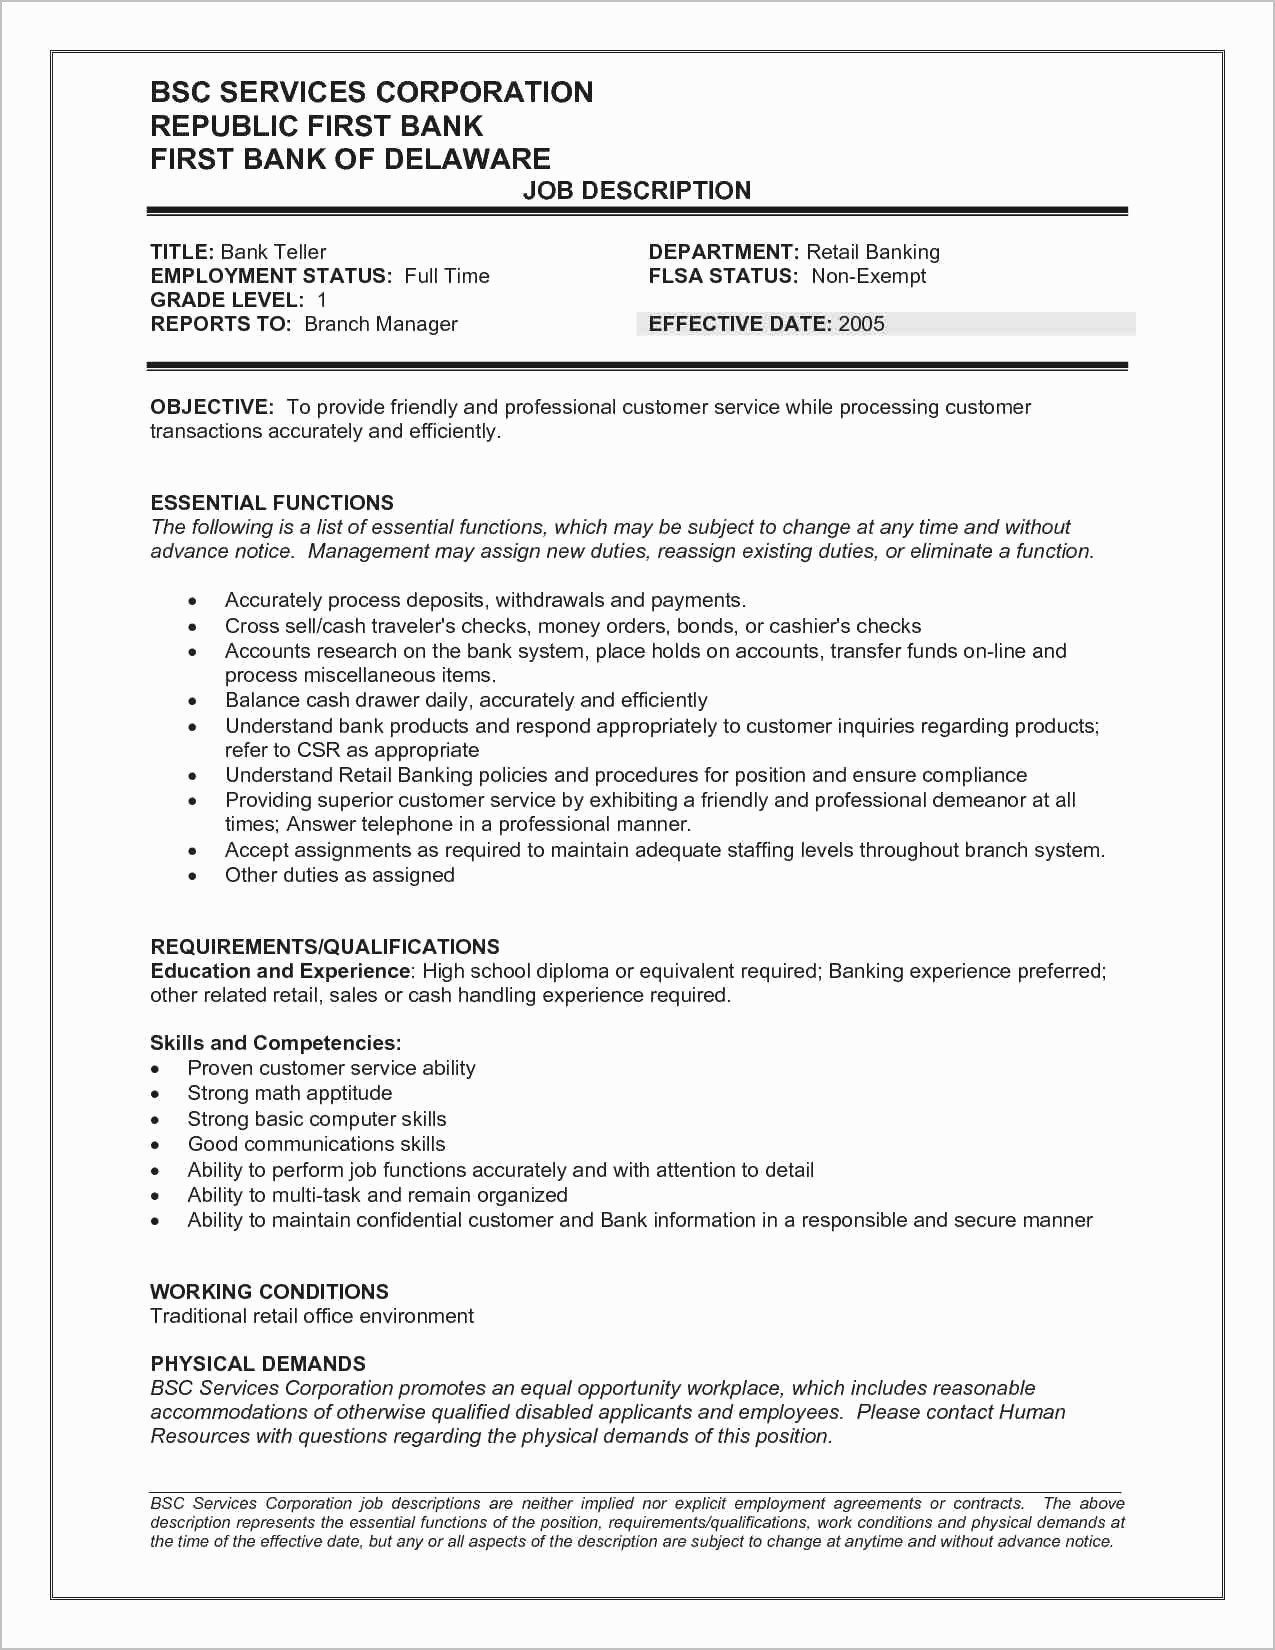 75 Cool Photos Of How To List Work Experience On A Resume Examples